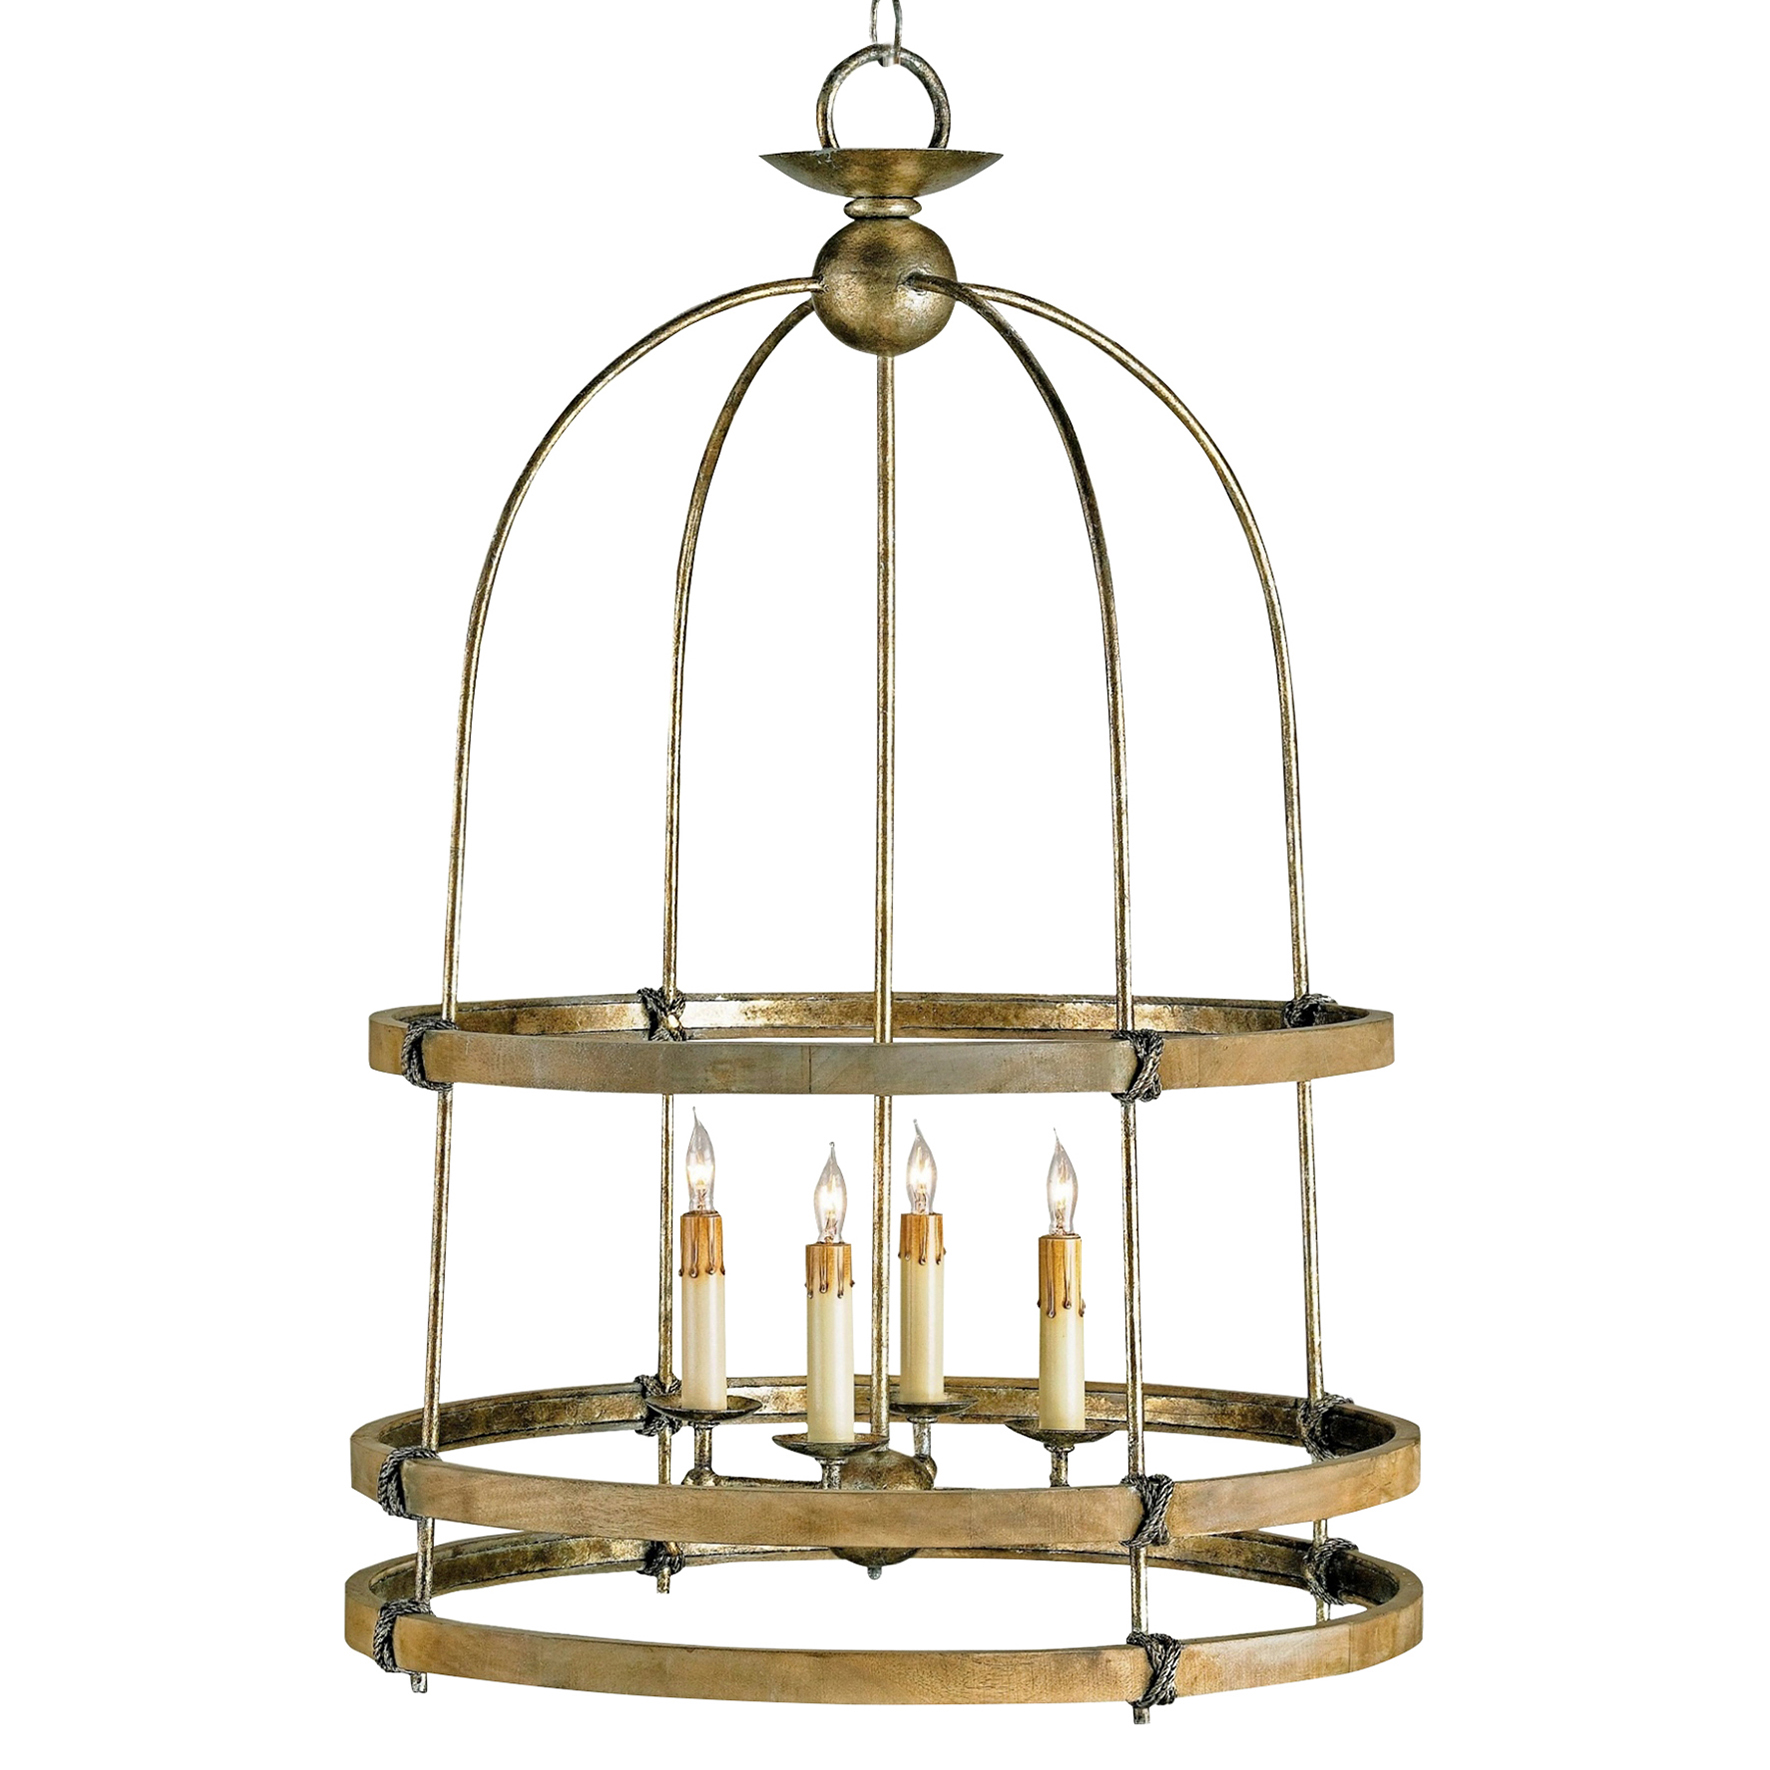 Brant Rustic Lodge Wood Cylinder Knot Arched Lantern